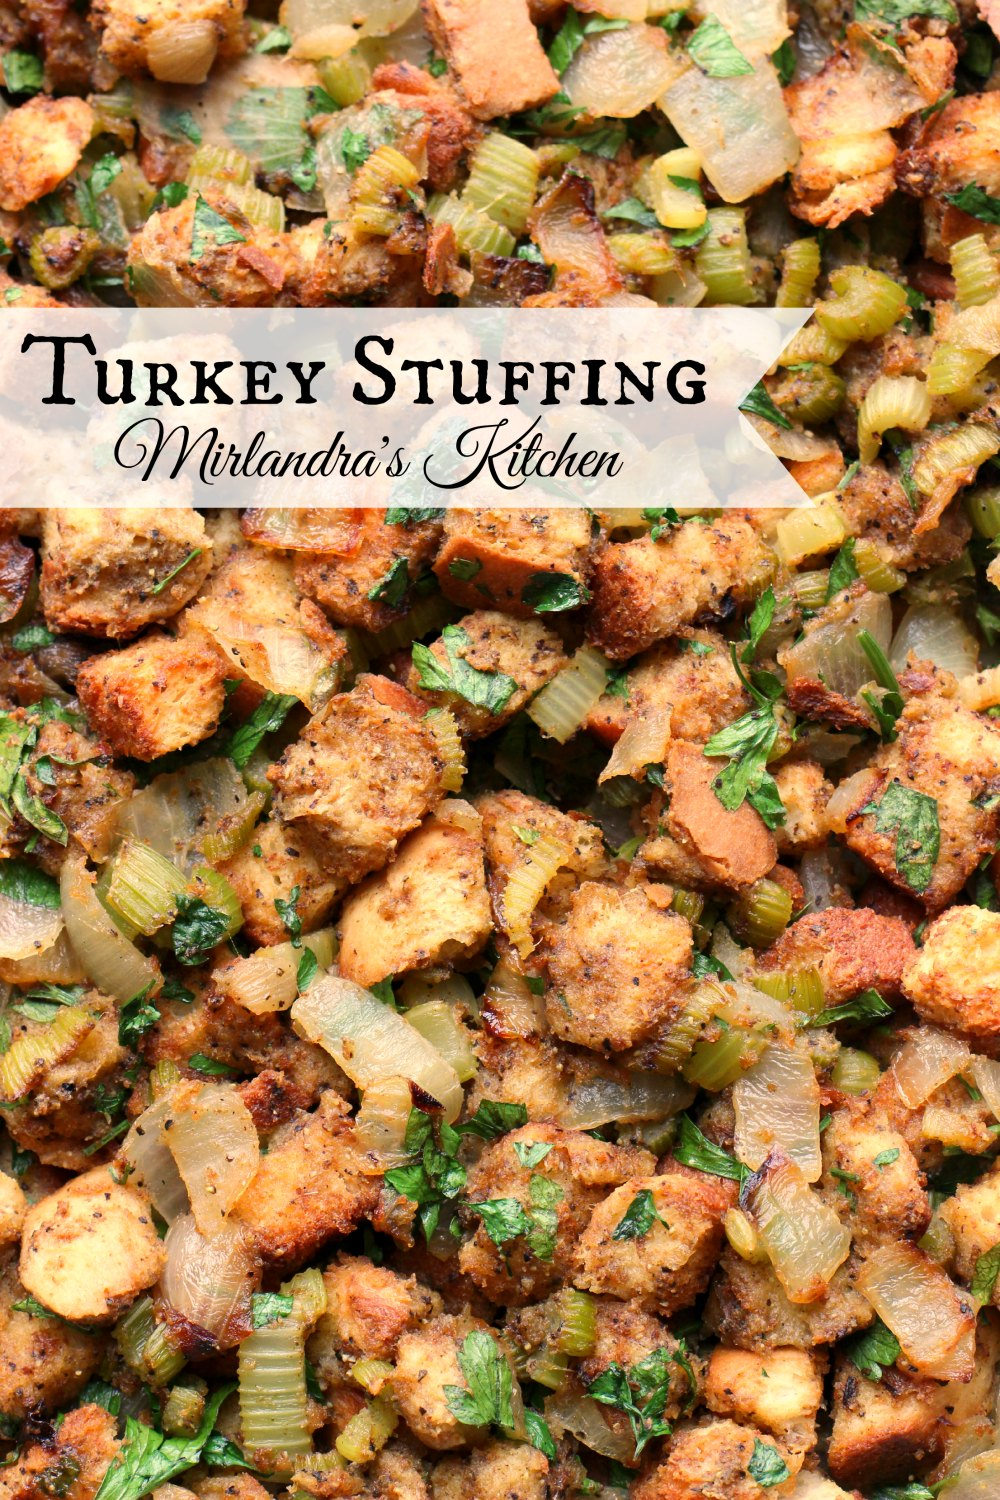 From scratch turkey stuffing full of flavor and plenty of veggies. This can be made in advance and goes great with any roasted poultry.